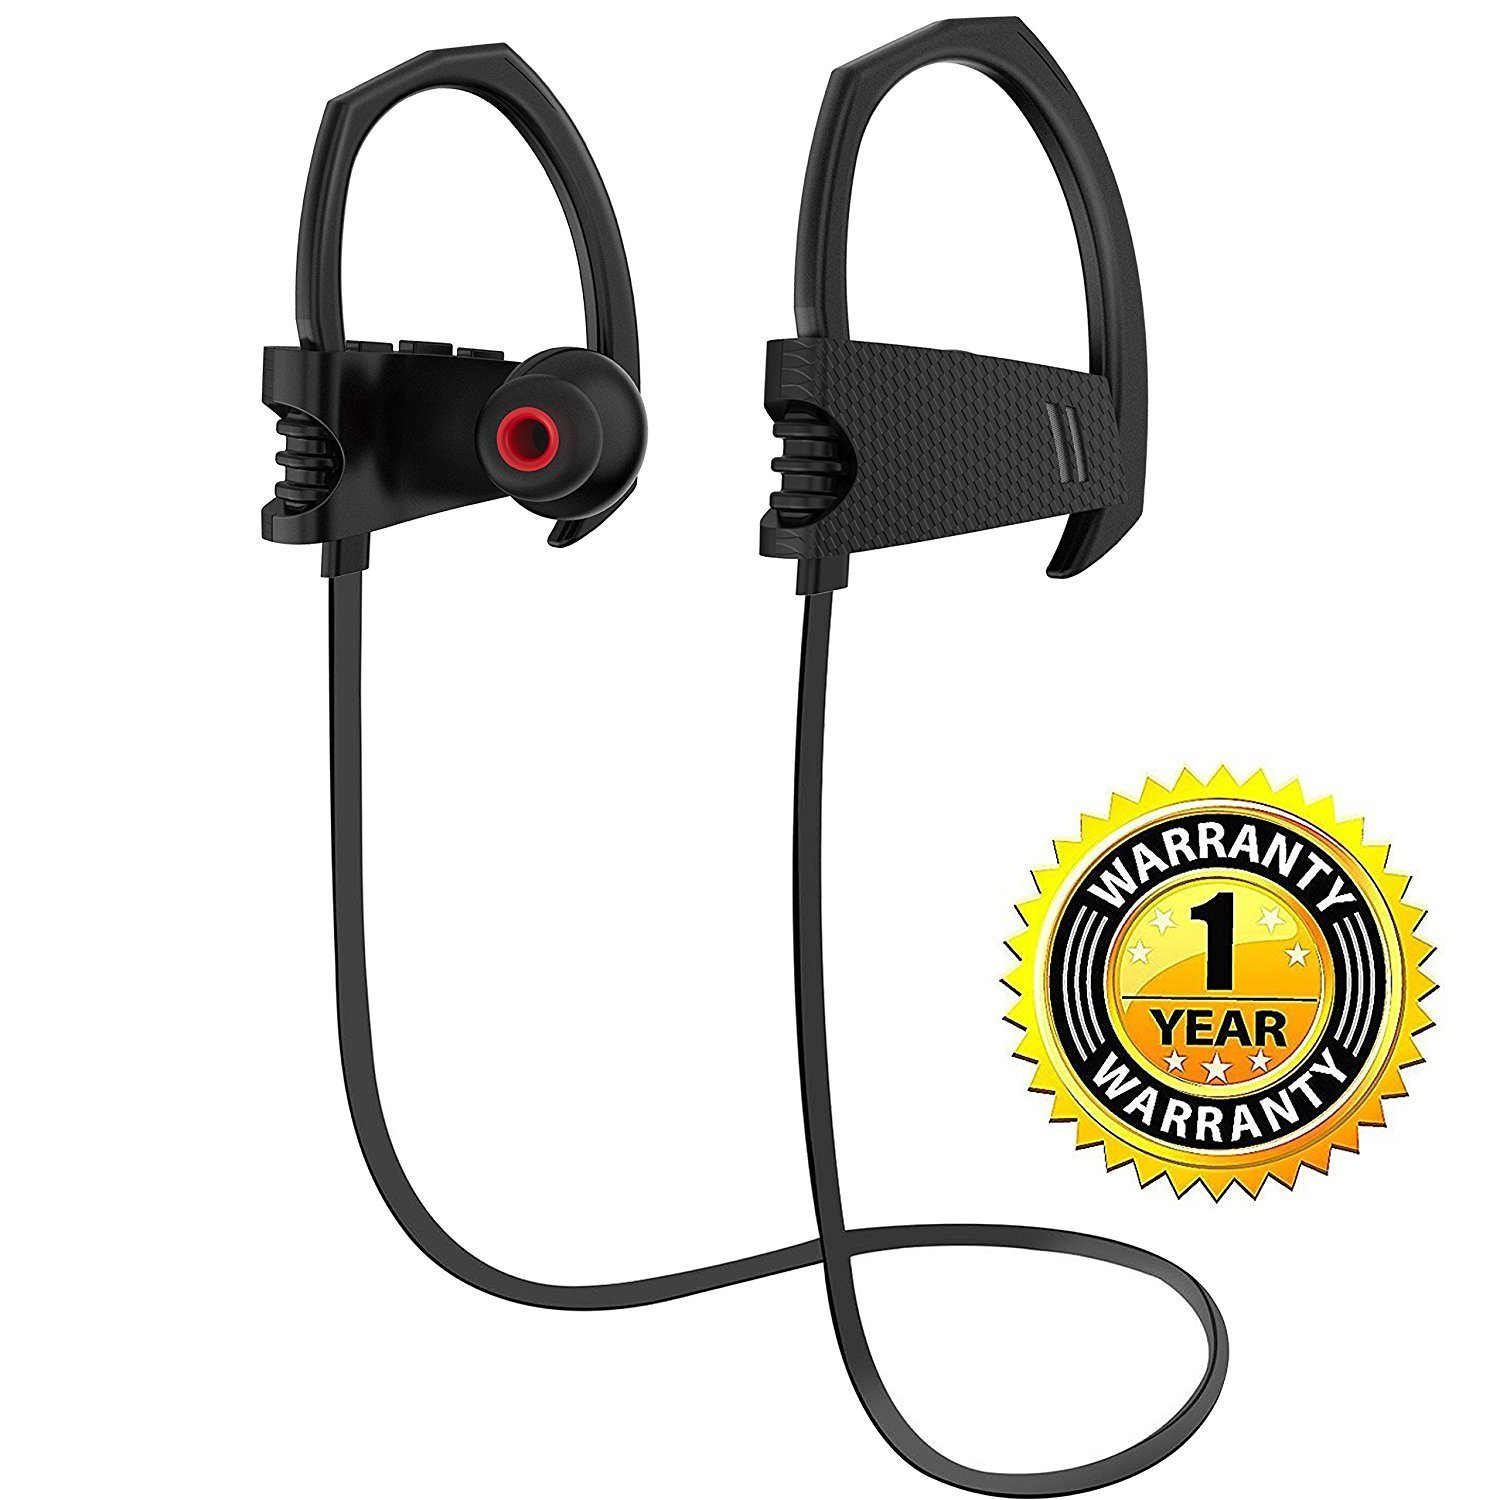 ALZN Wireless Headset V4.1 Heavy Bass Stereo In -Ear Earbuds